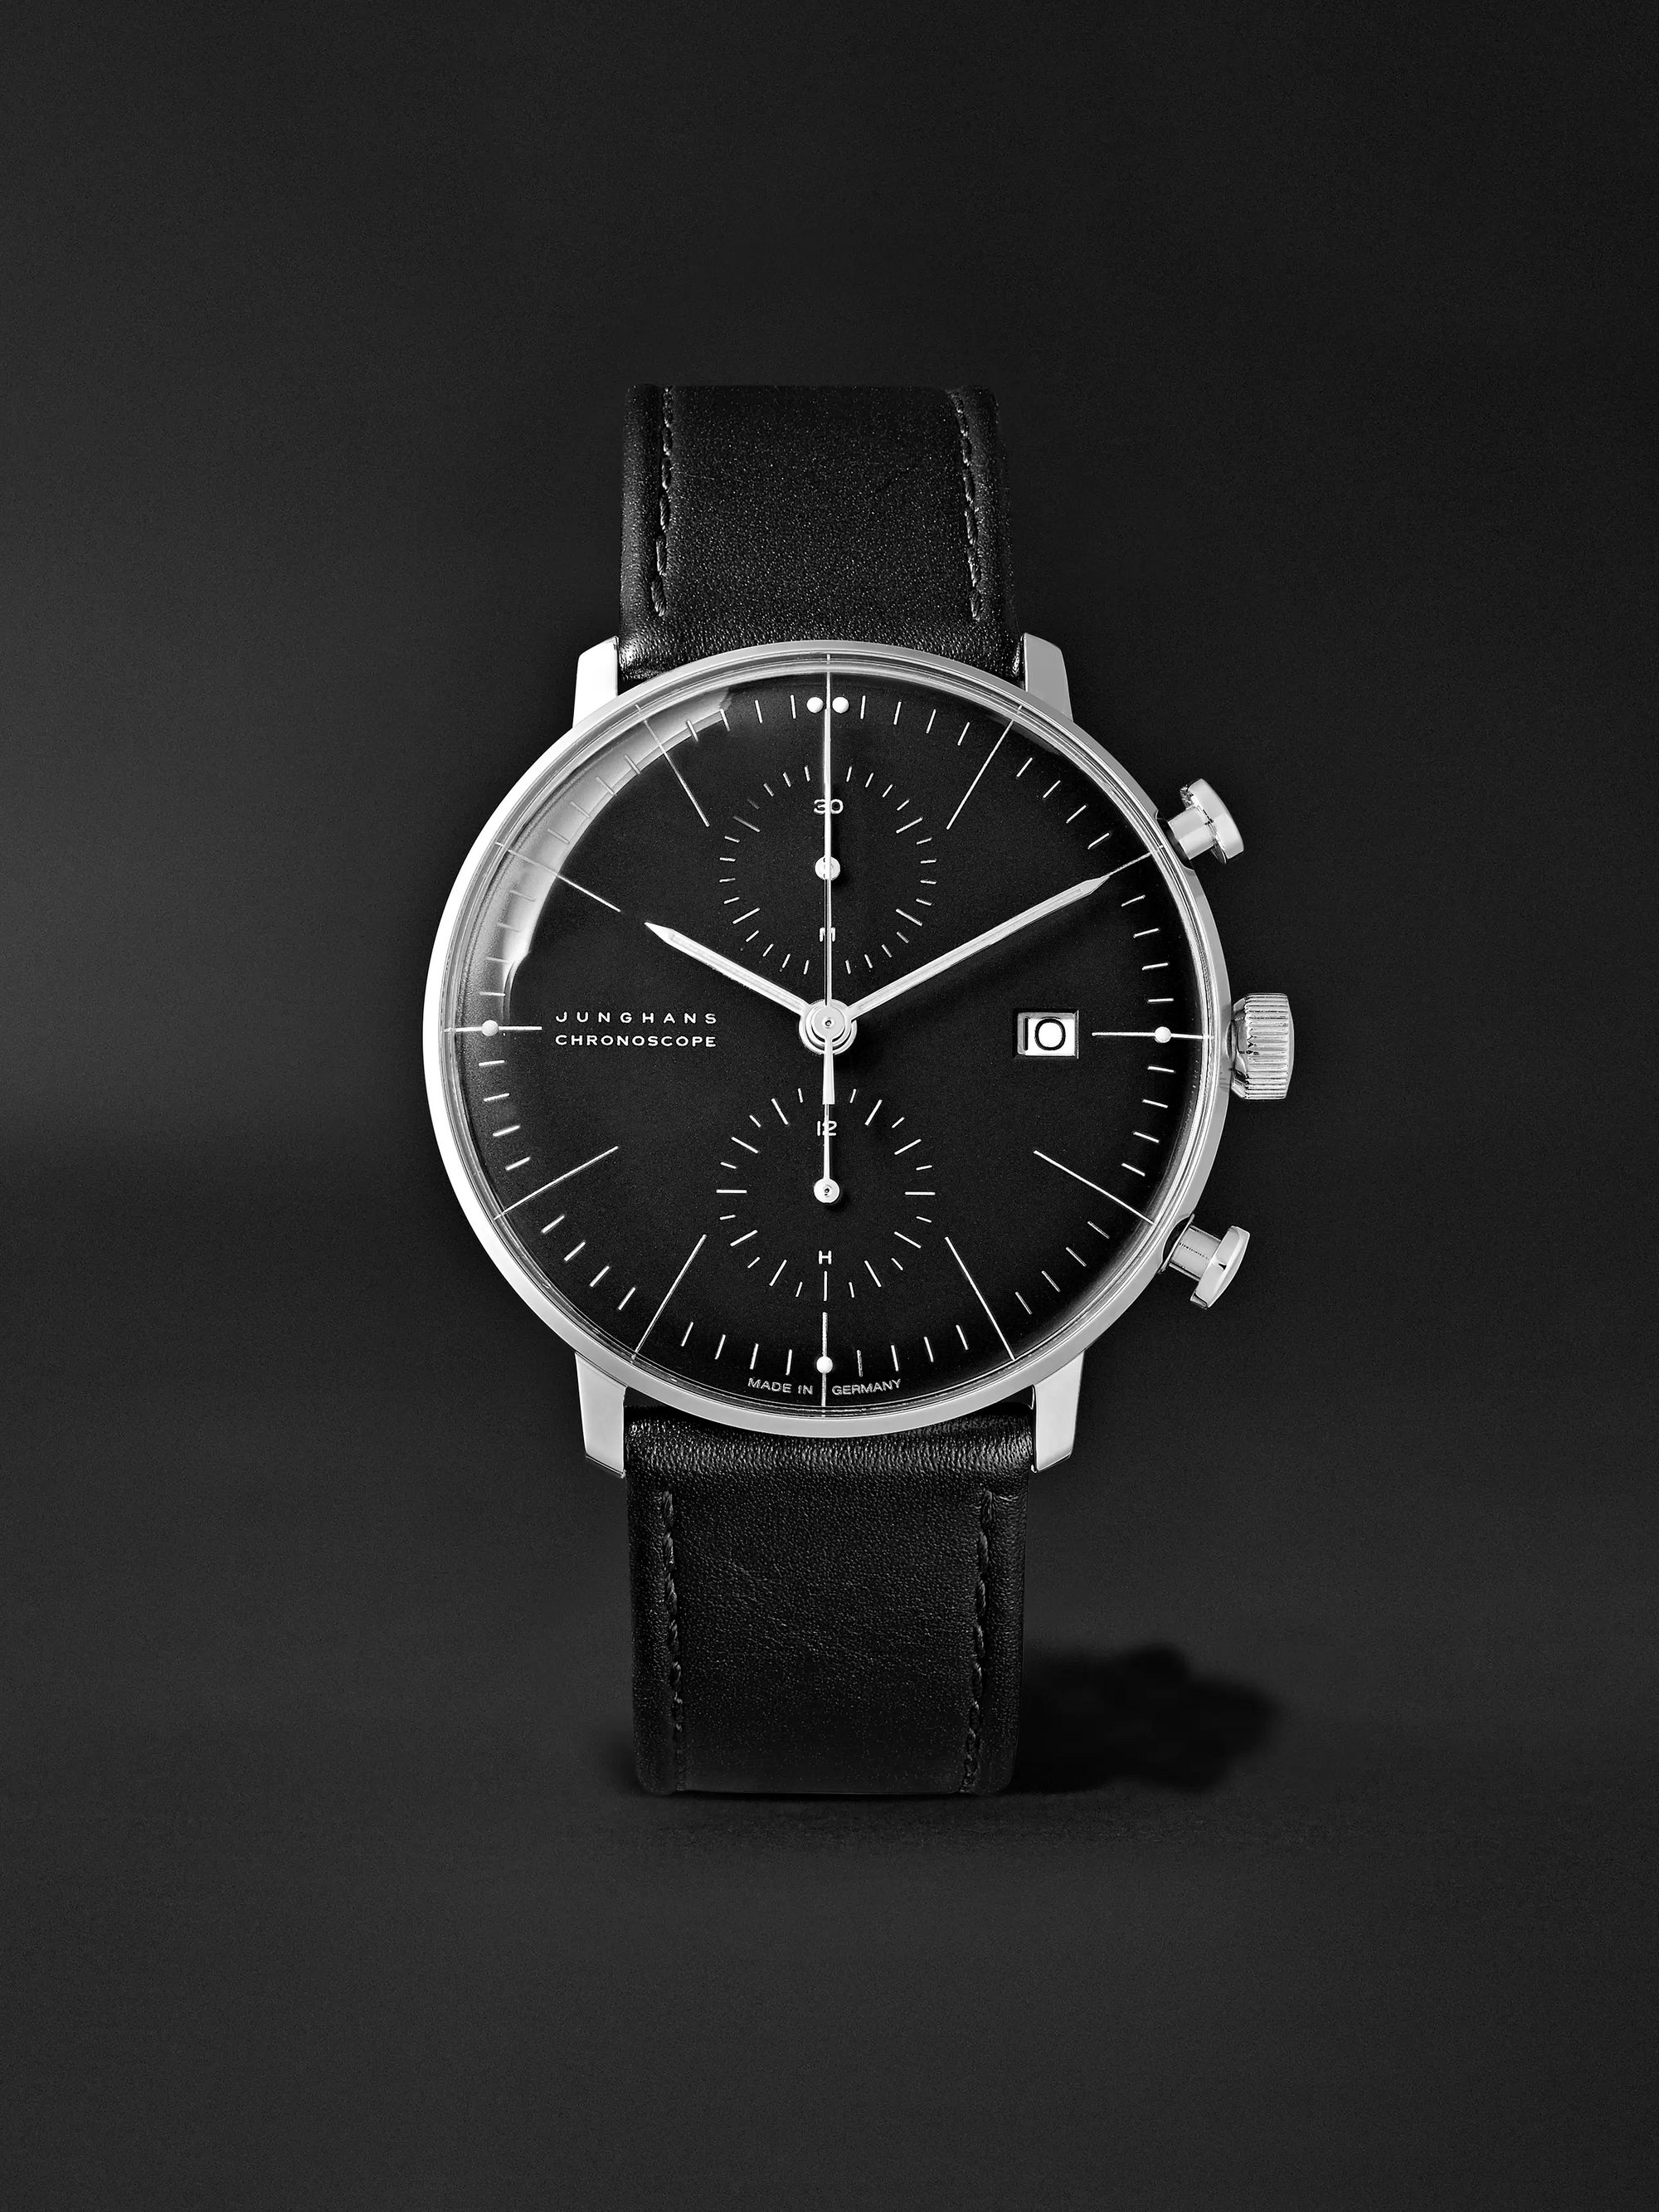 JUNGHANS Max Bill Automatic Chronoscope 40mm Stainless Steel and Leather Watch, Ref. No. 027/4600.04